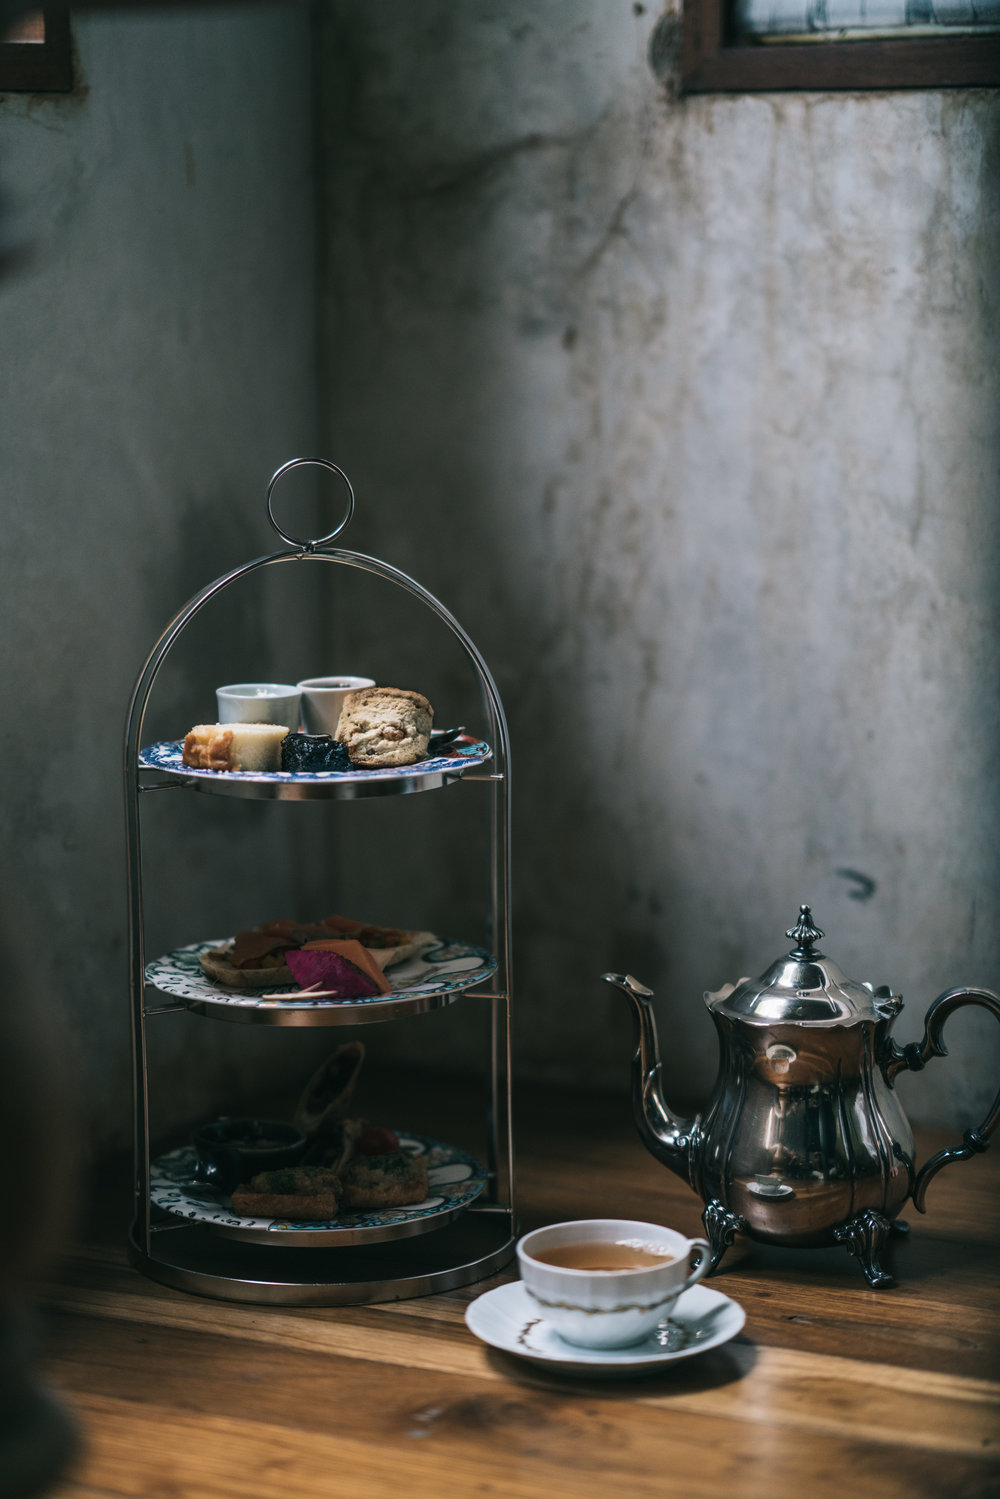 Moody afternoon tea -food, cafe and lifestyle photography by Chiang Mai Photographer Sean Dalton.